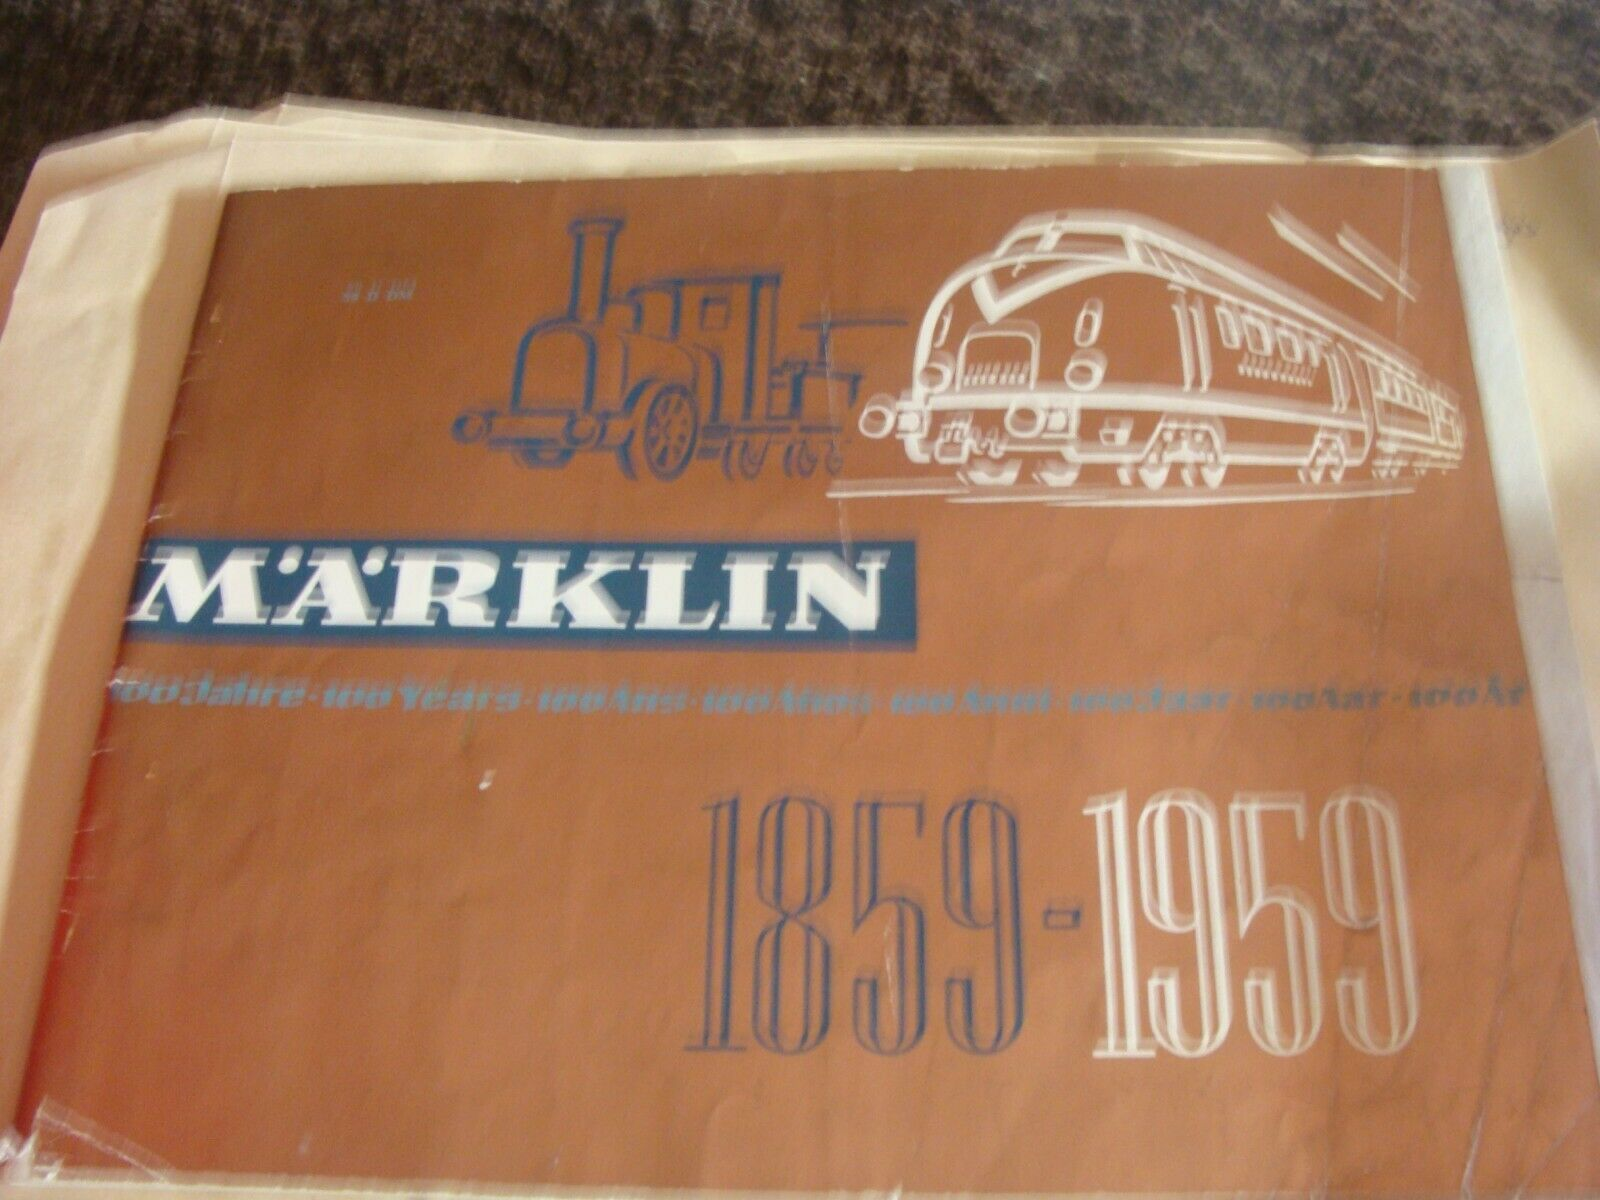 marklin Catalogue 59 G O.P. 1959  Geruomo  Coloree  Original with prices